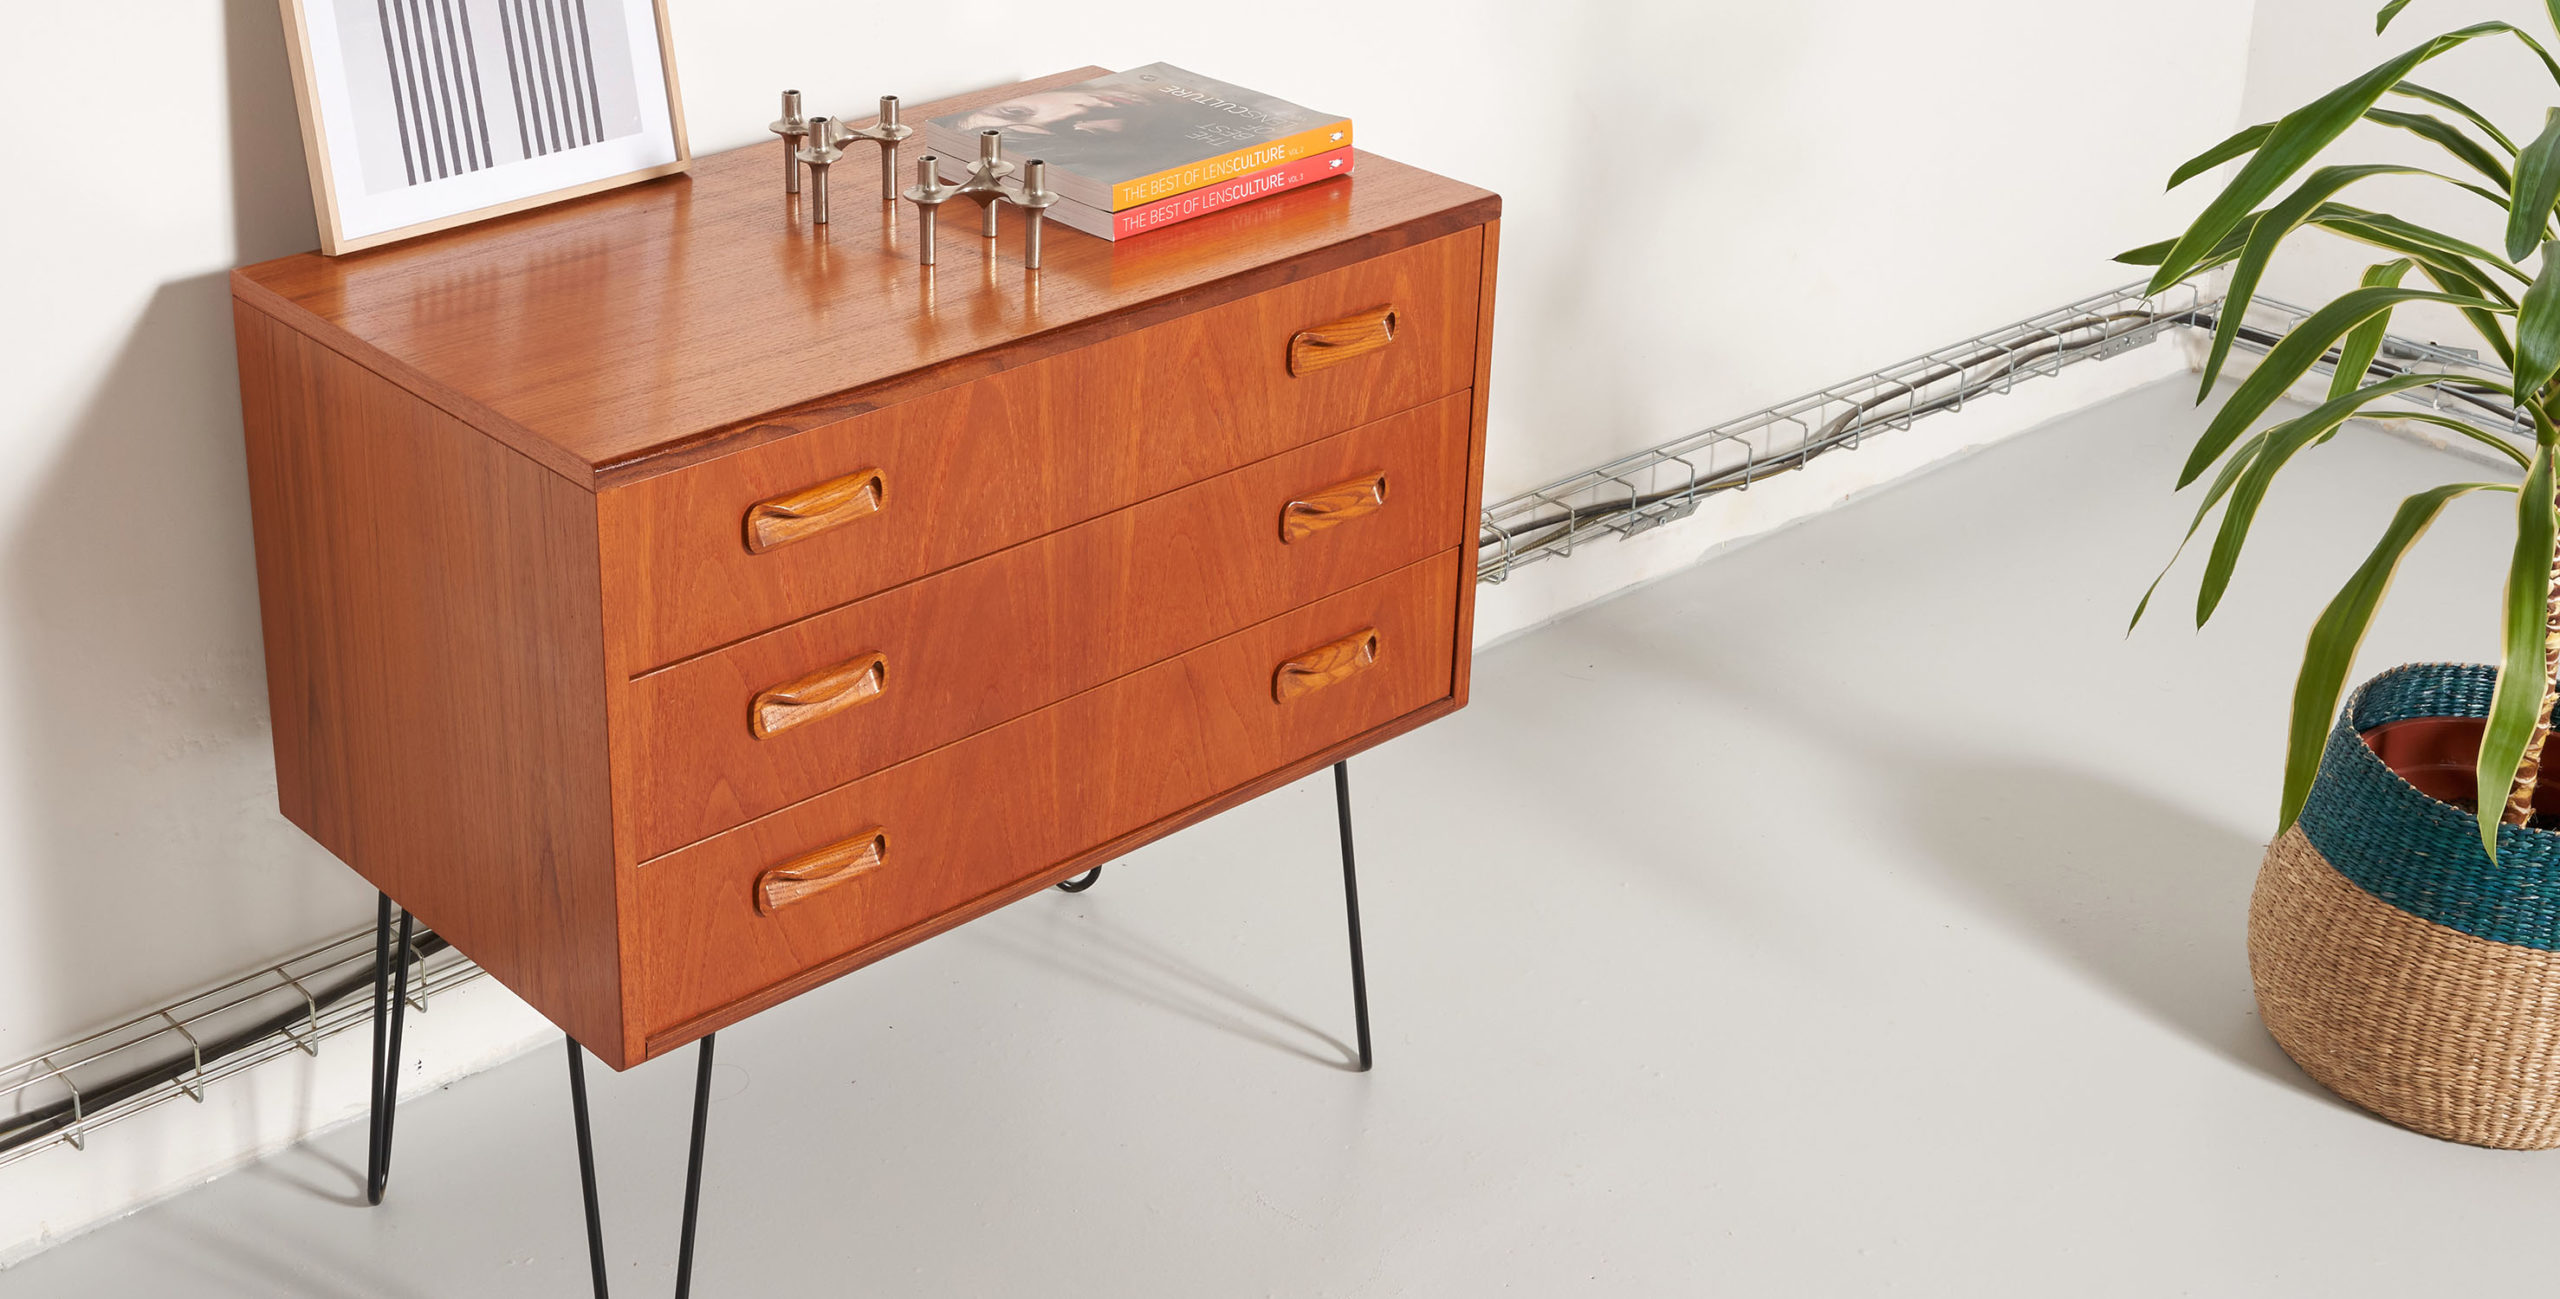 commode scandinave, commode vintage, commode 3 tiroirs vintage, commode teck, commode en teck vintage, commode g plan, commode hairpin legs, commode pieds metal